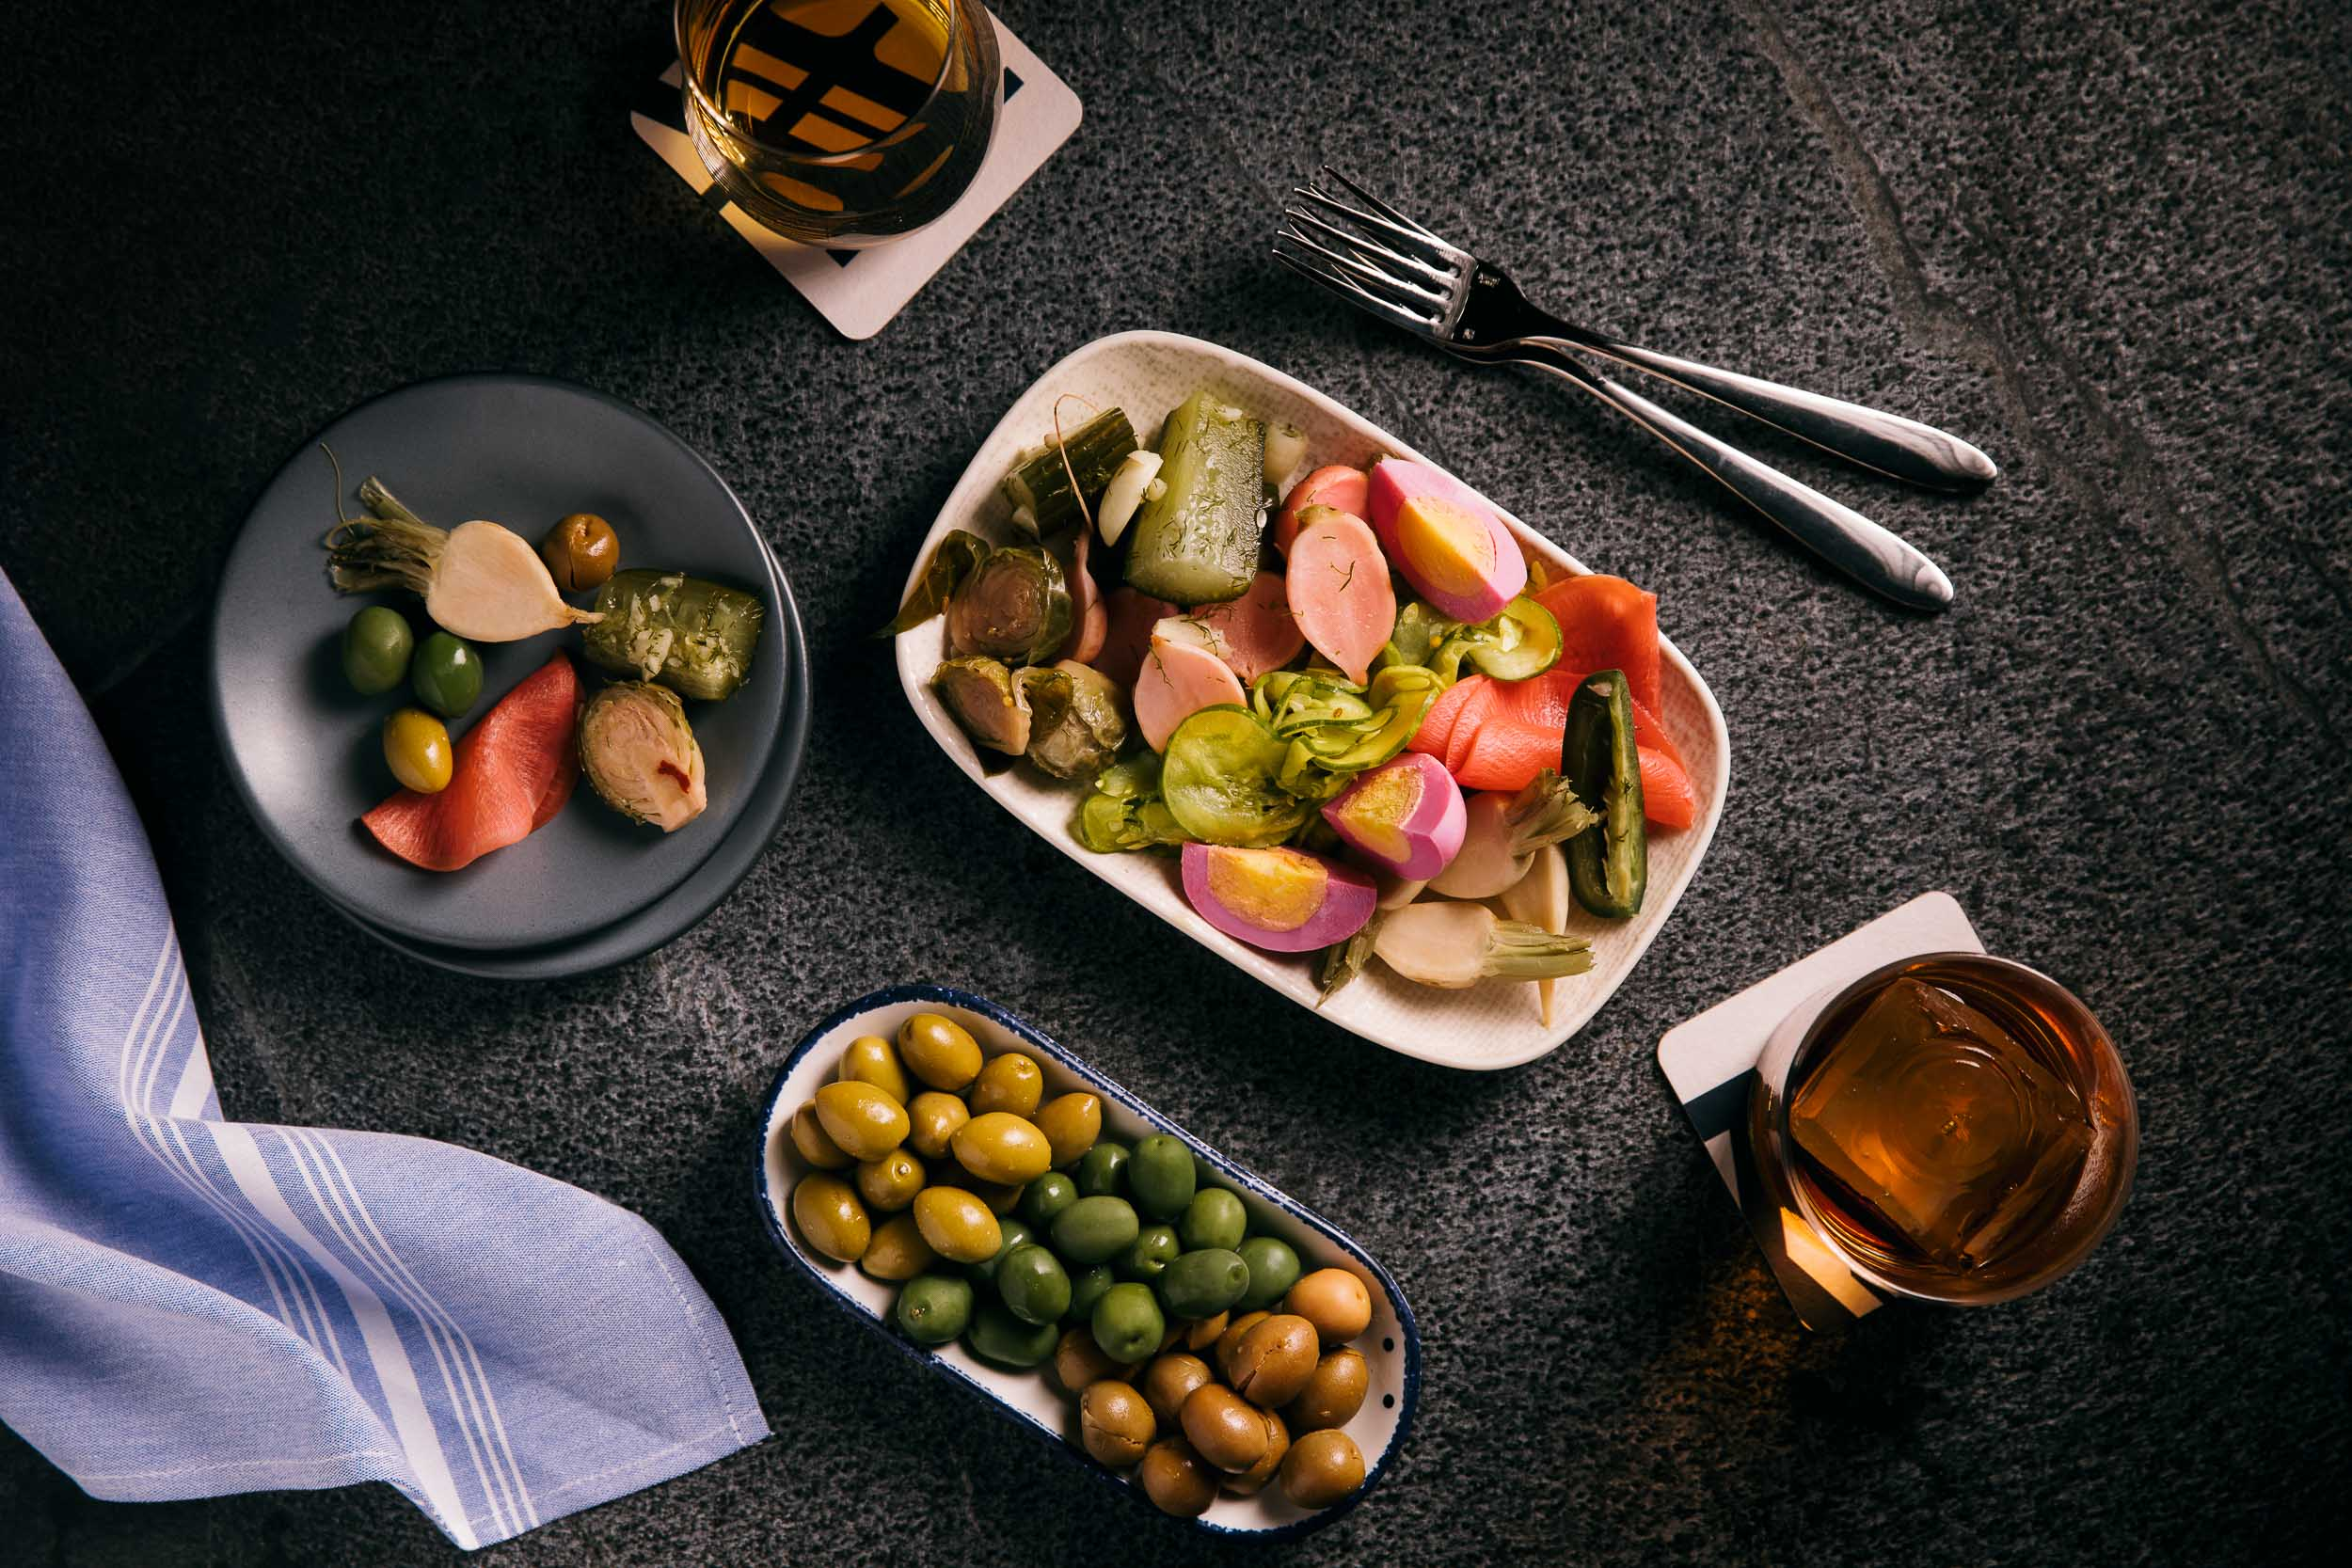 Alcove_Olives and Pickled Vegetables_Emily Kan.jpg